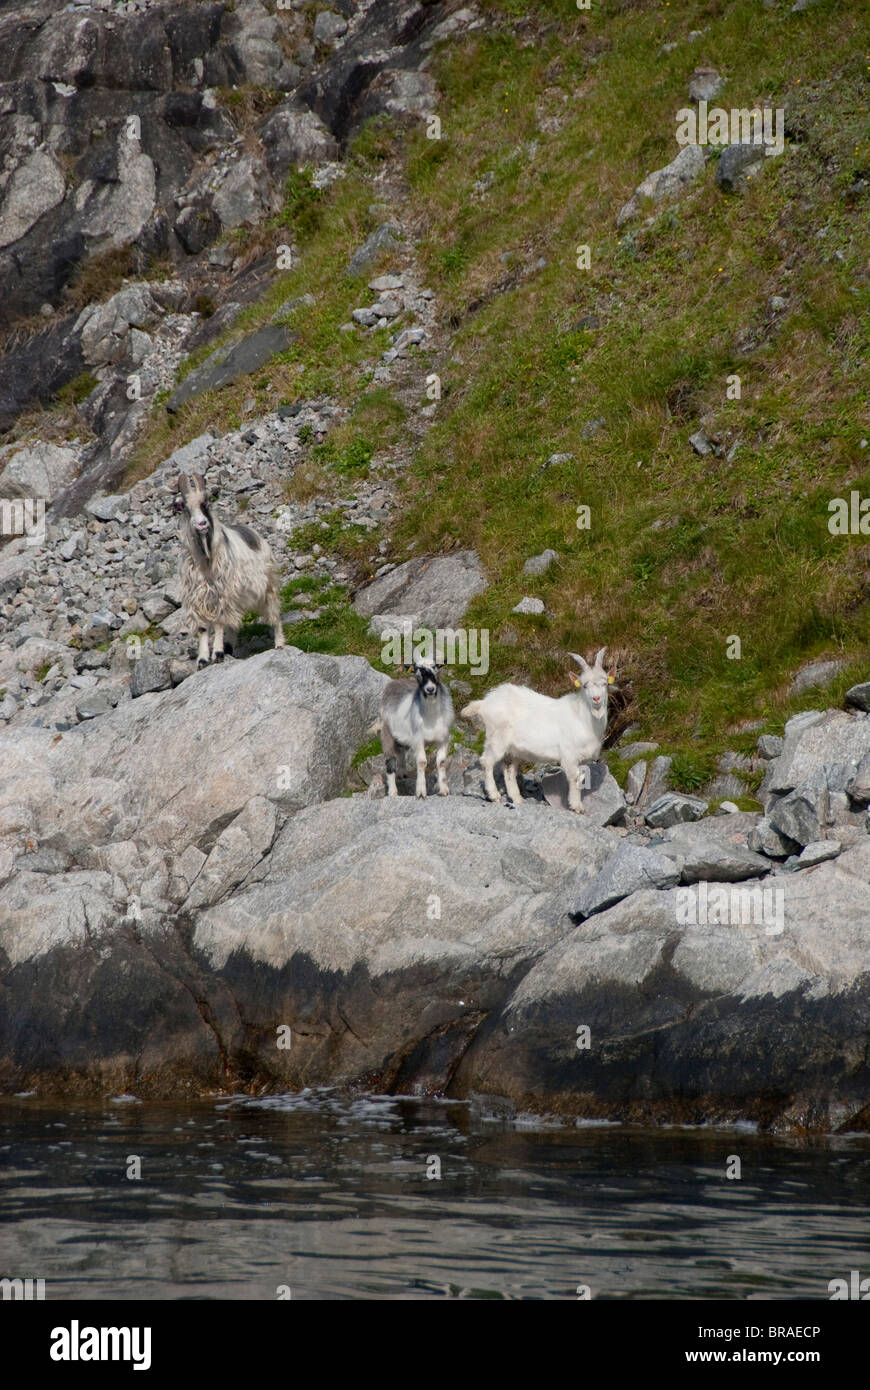 Norway, Stavanger, Lysefjord (aka Lyse Fjord). Domesticated goats along the water's edge of the fjord. - Stock Image